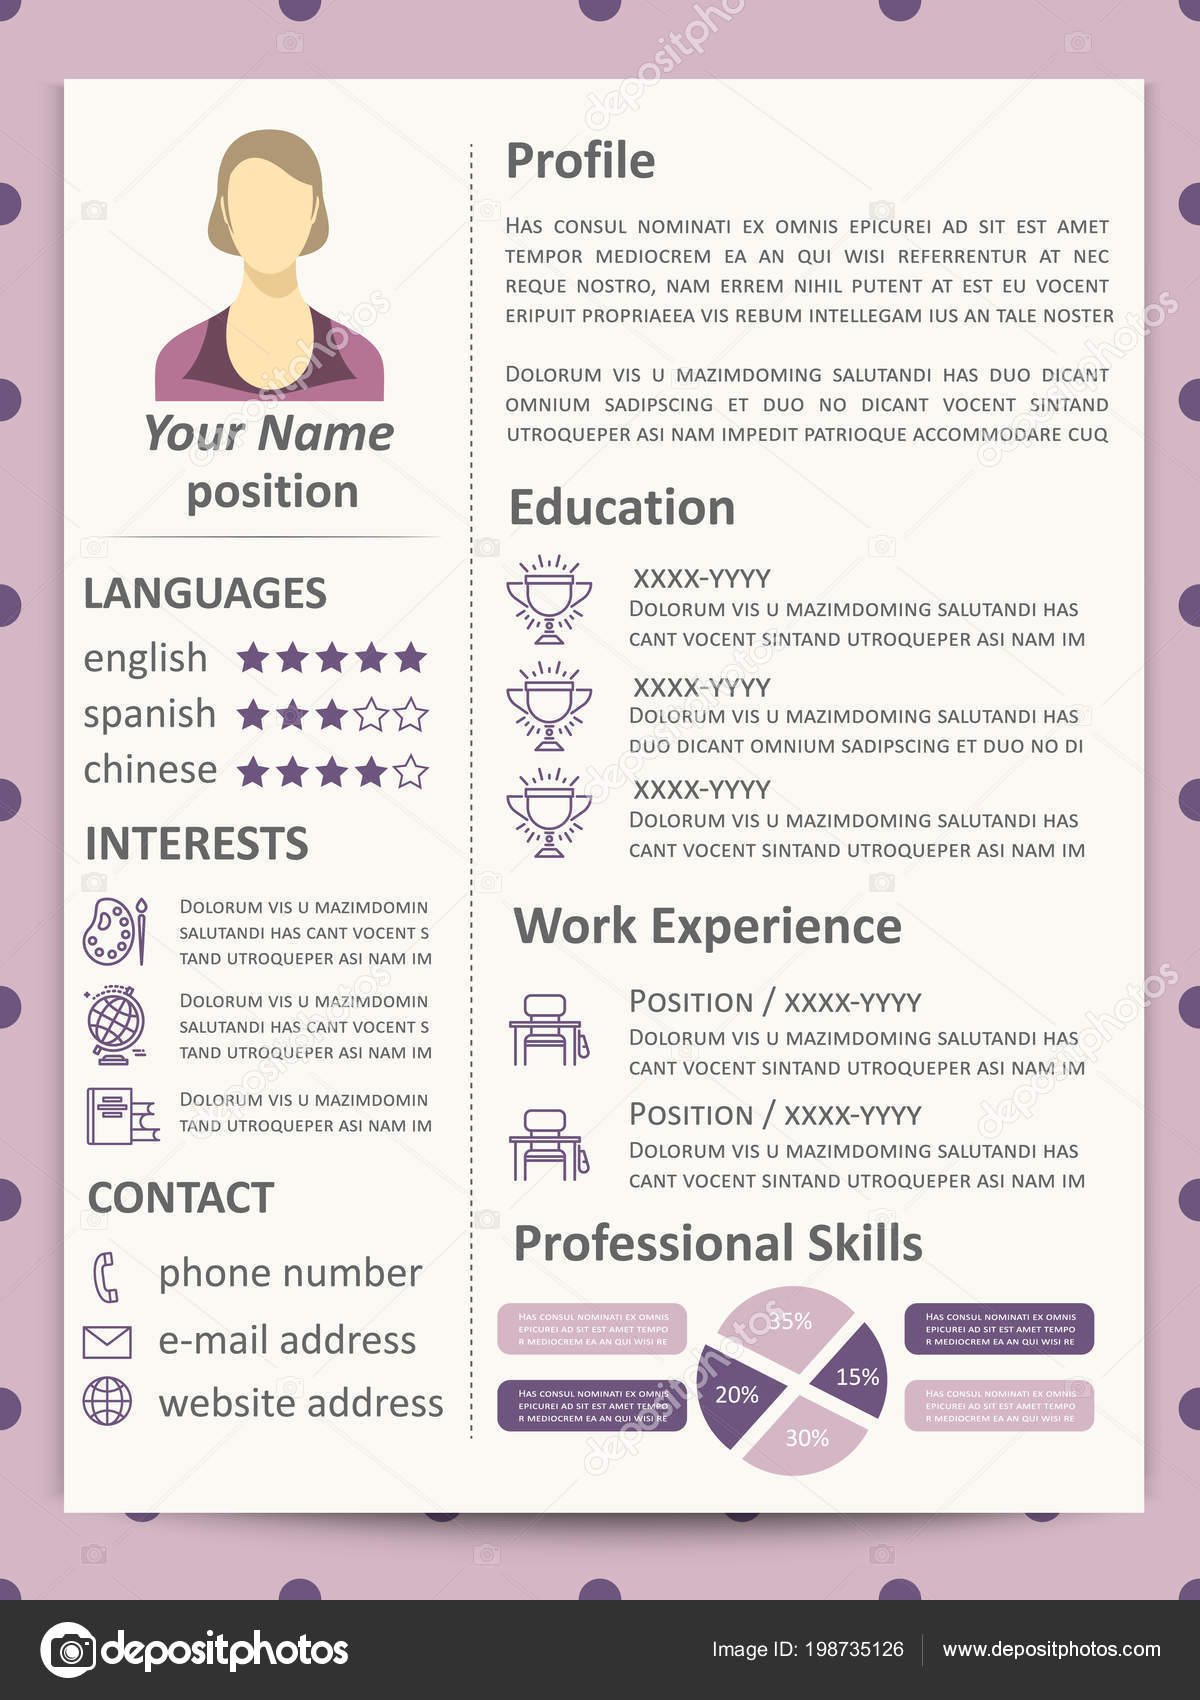 Cute resume templates | Female resume template with infographics ...